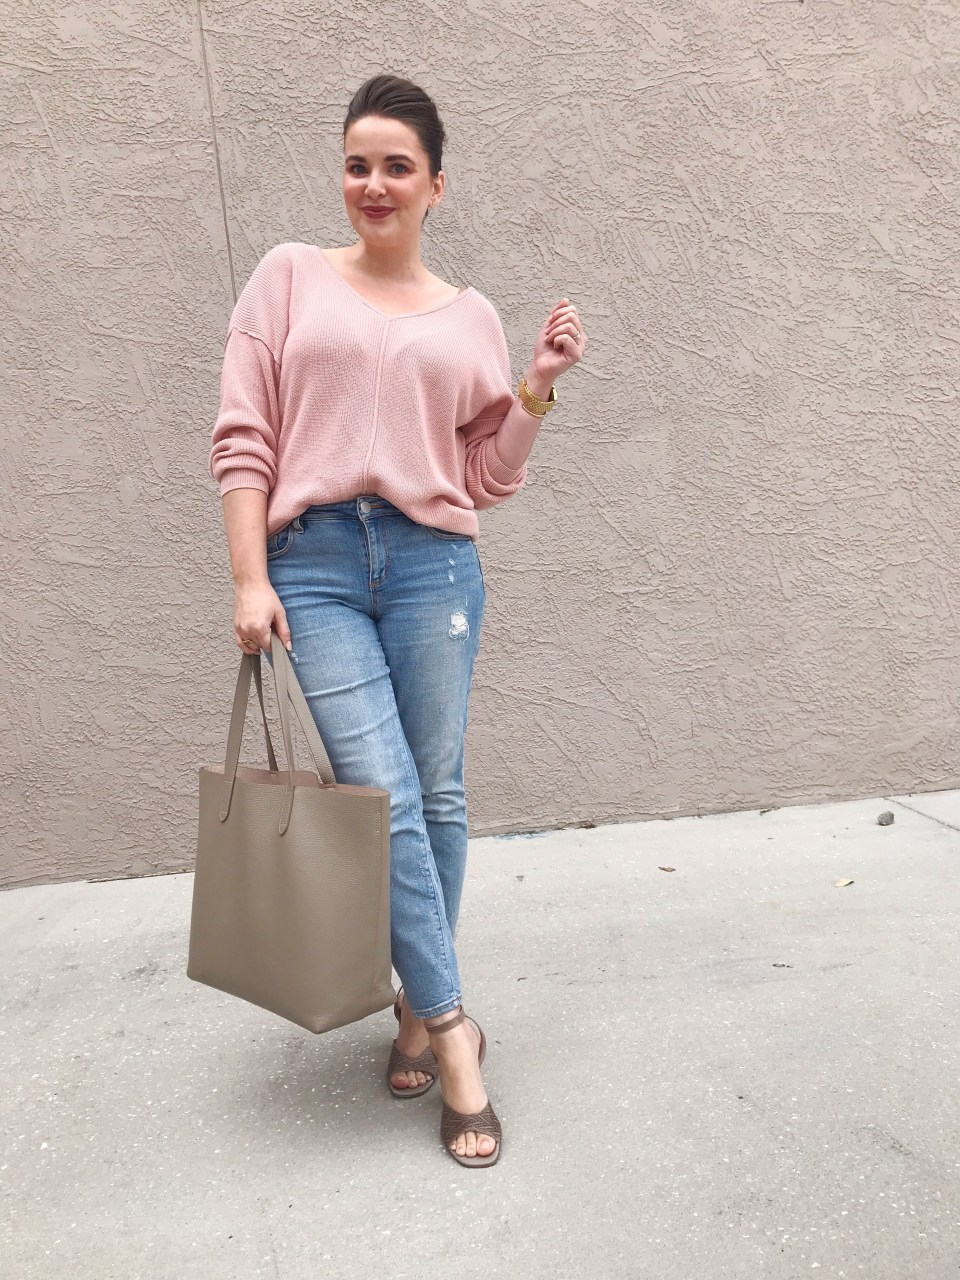 Style blogger wearing a pink sweater with distressed jeans, carrying a Cuyana structured leather tote